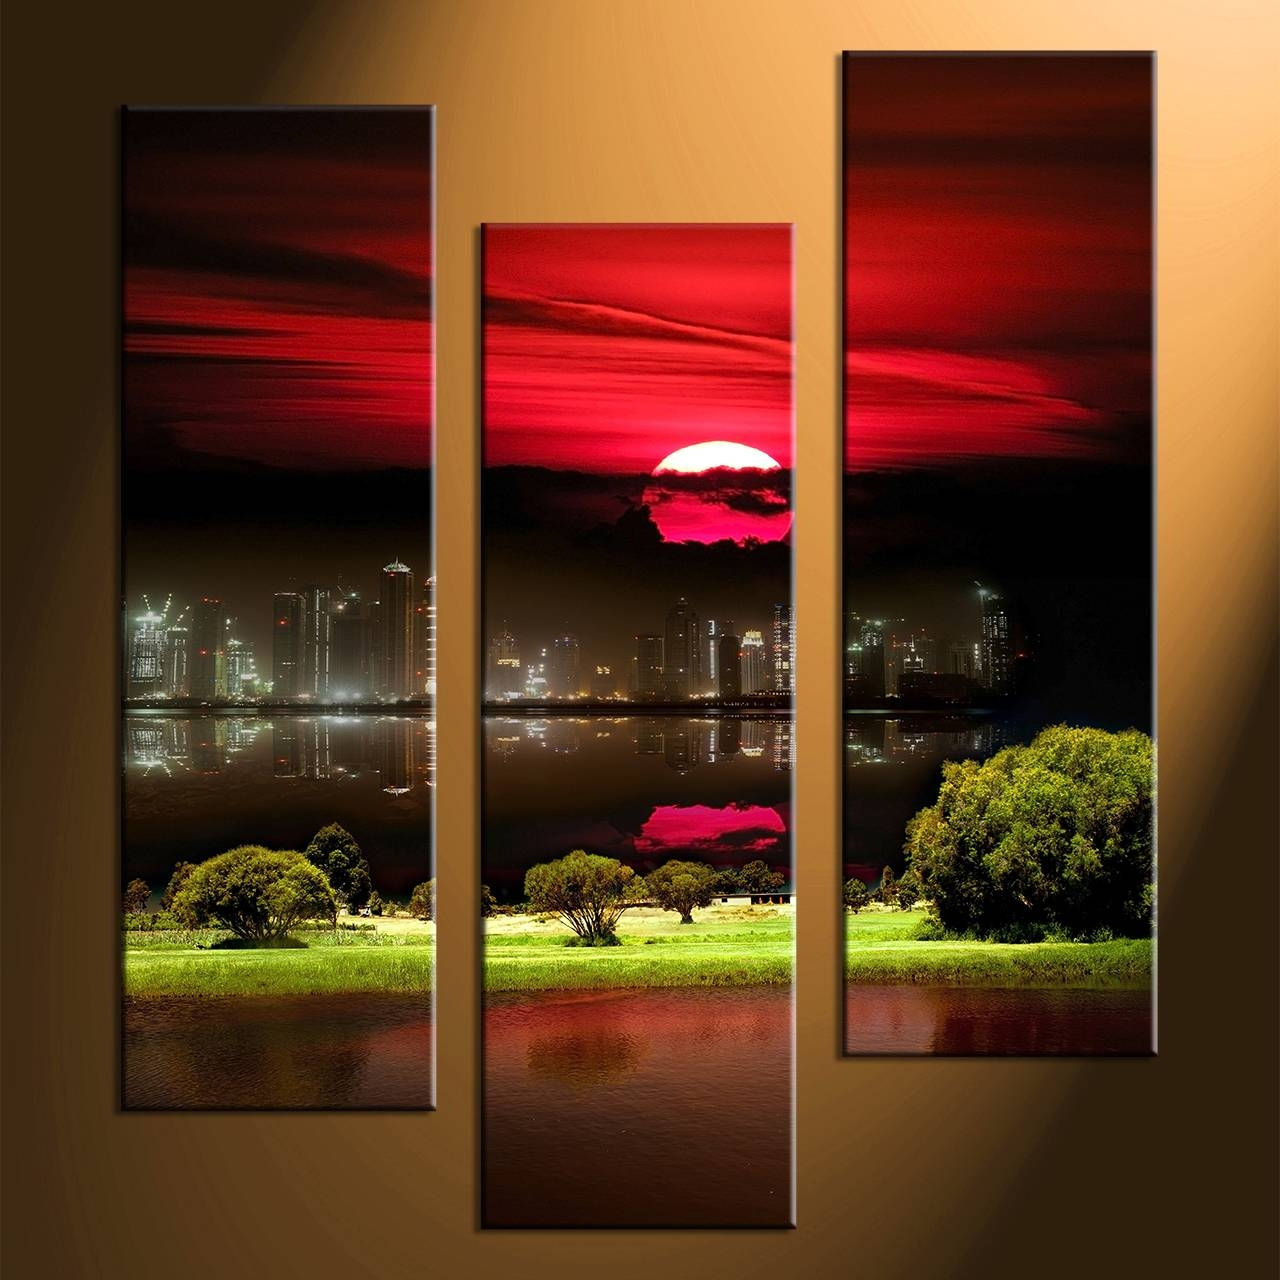 Outstanding White Blossom'' 2 Piece Canvas Wall Art Set Piece Inside Most Recent Three Piece Wall Art Sets (View 7 of 15)